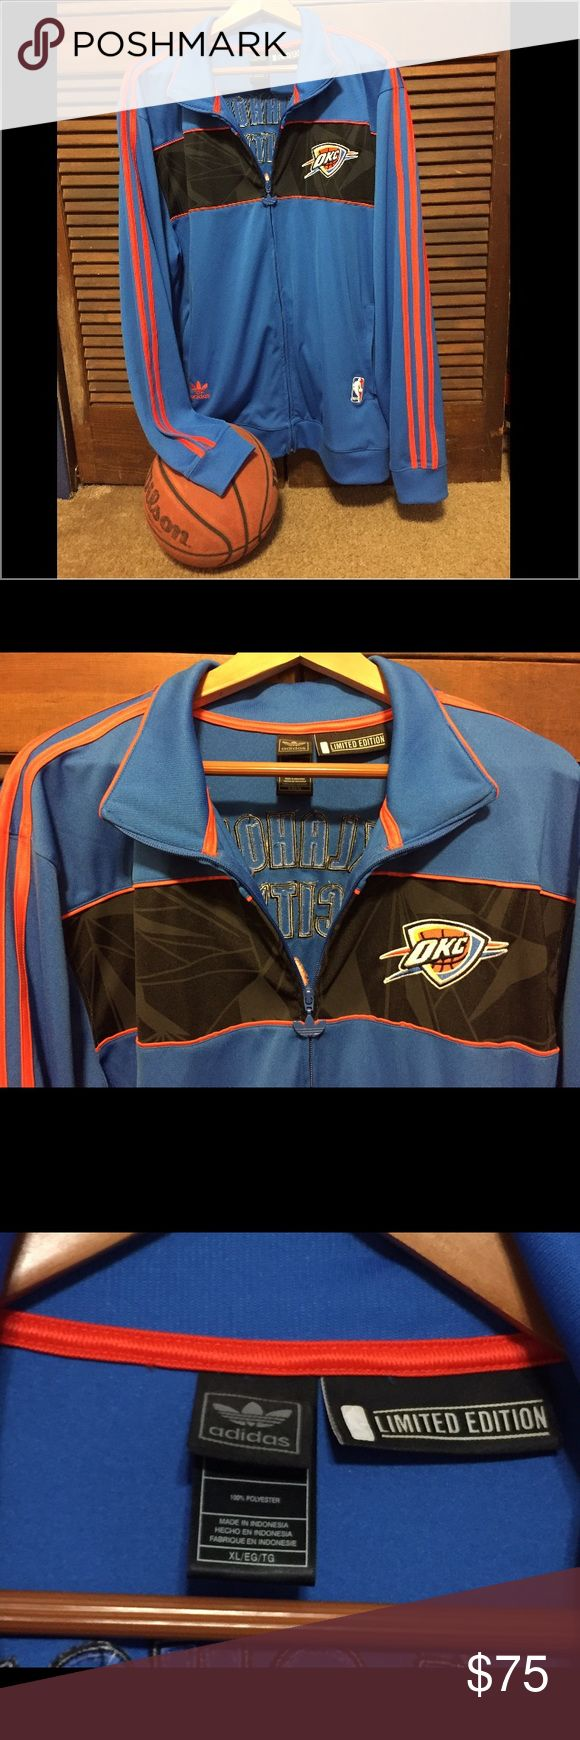 """🏀Adidas OKC Thunder Jacket 🏀🏀 Men's Adidas """"Limited Edition"""" Track Jacket! Size XL. 💯 polyester. Zip front with 2 side zip pockets. Easy pull Adidas logo toggle on zipper. OKC Thunder embroidered patch on front chest. NBA logo on bottom front pocket & other pocket has the Adidas logo. The color is Royal Blue with Black across the chest area & bright orange trim stripes down each sleeve. Oklahoma City & Adidas logo embroidered on back. What more can I say...this is one awesome jacket…"""